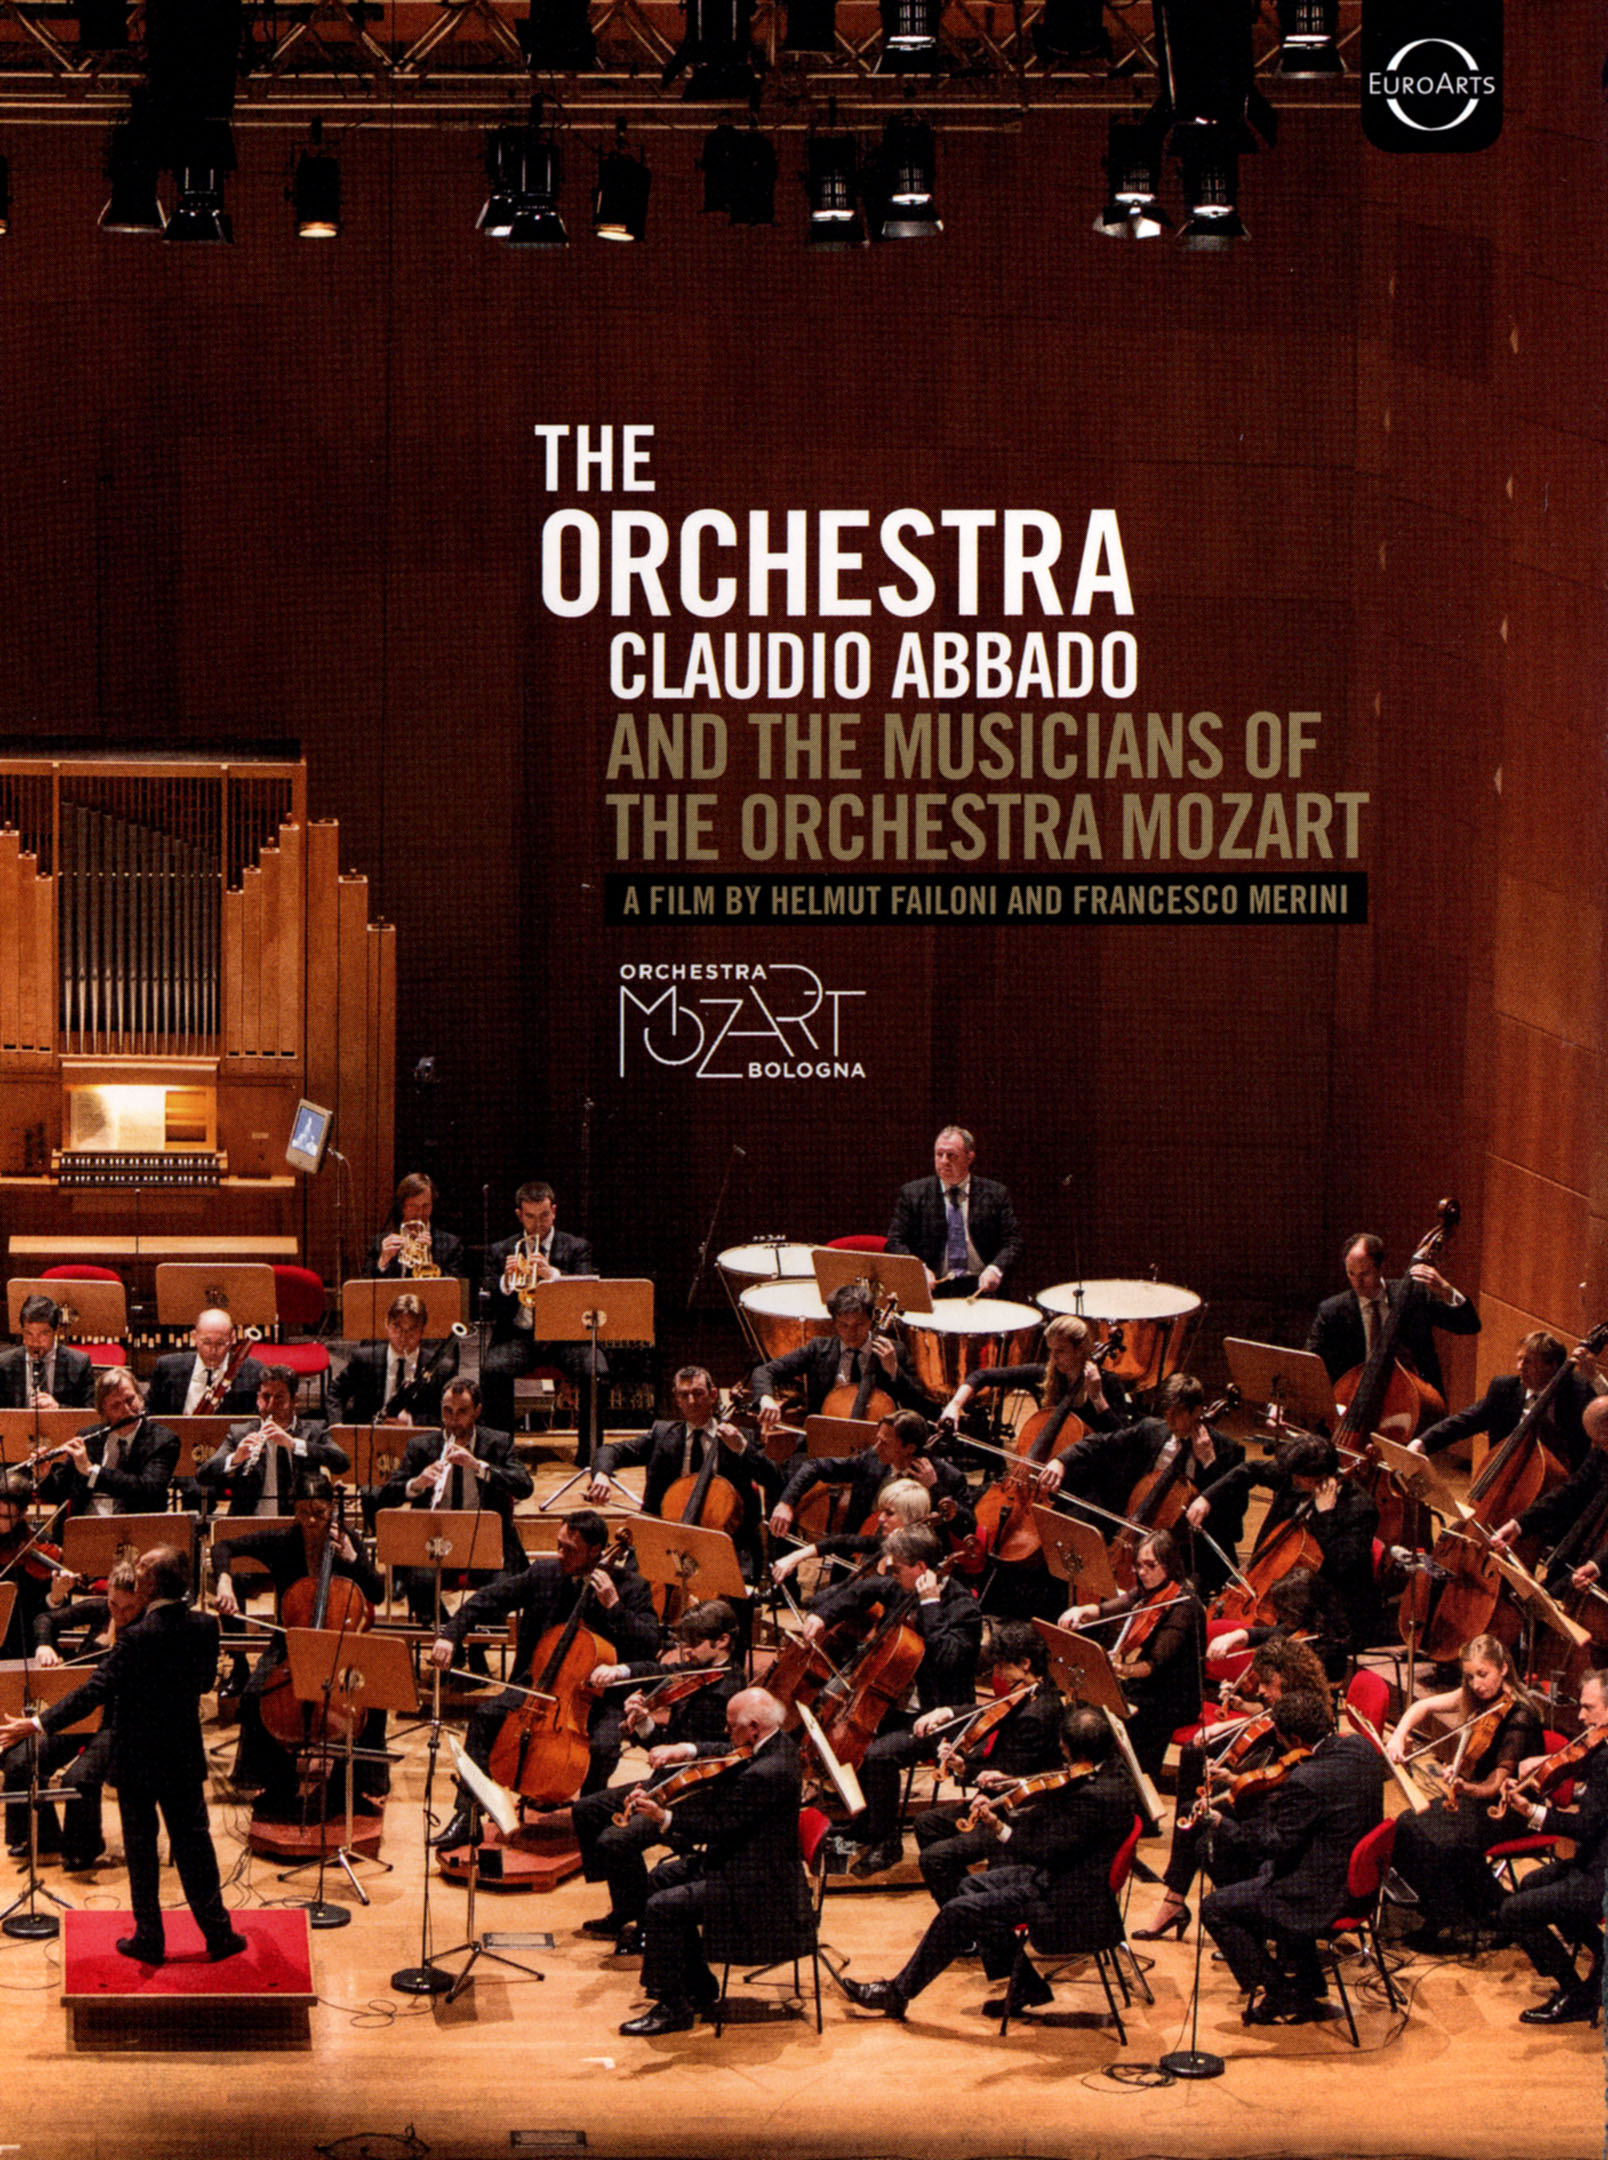 The Orchestra: Claudio Abbado and the Musicians of the Orchestra Mozart